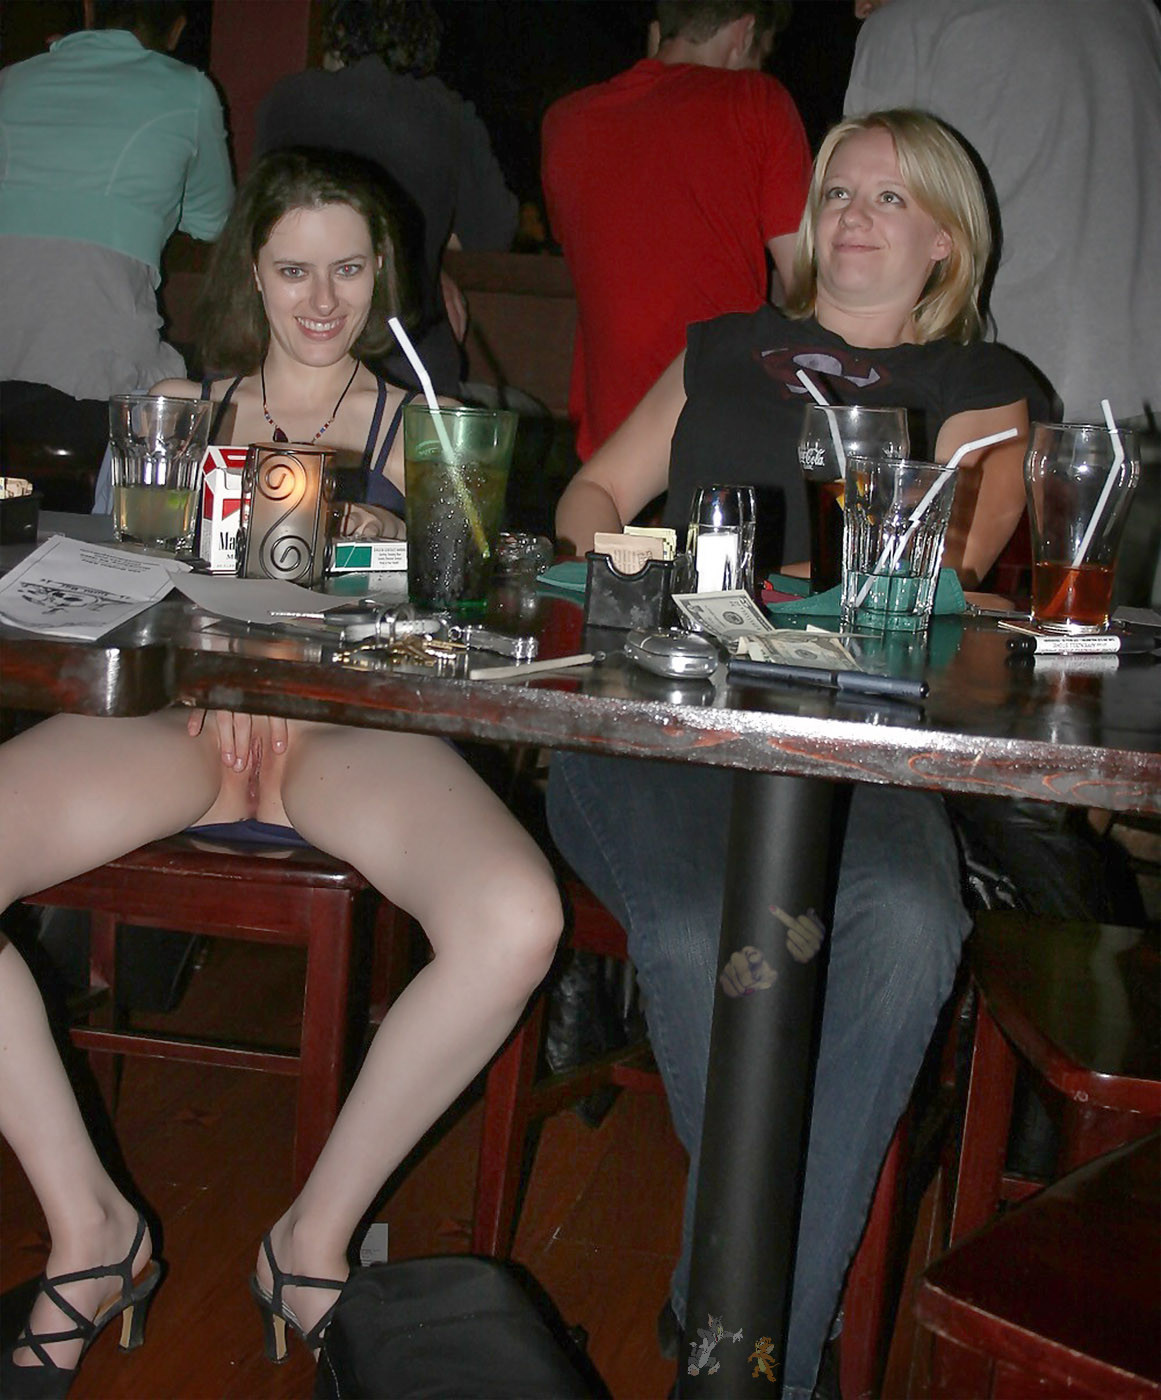 Upskirt no panties party